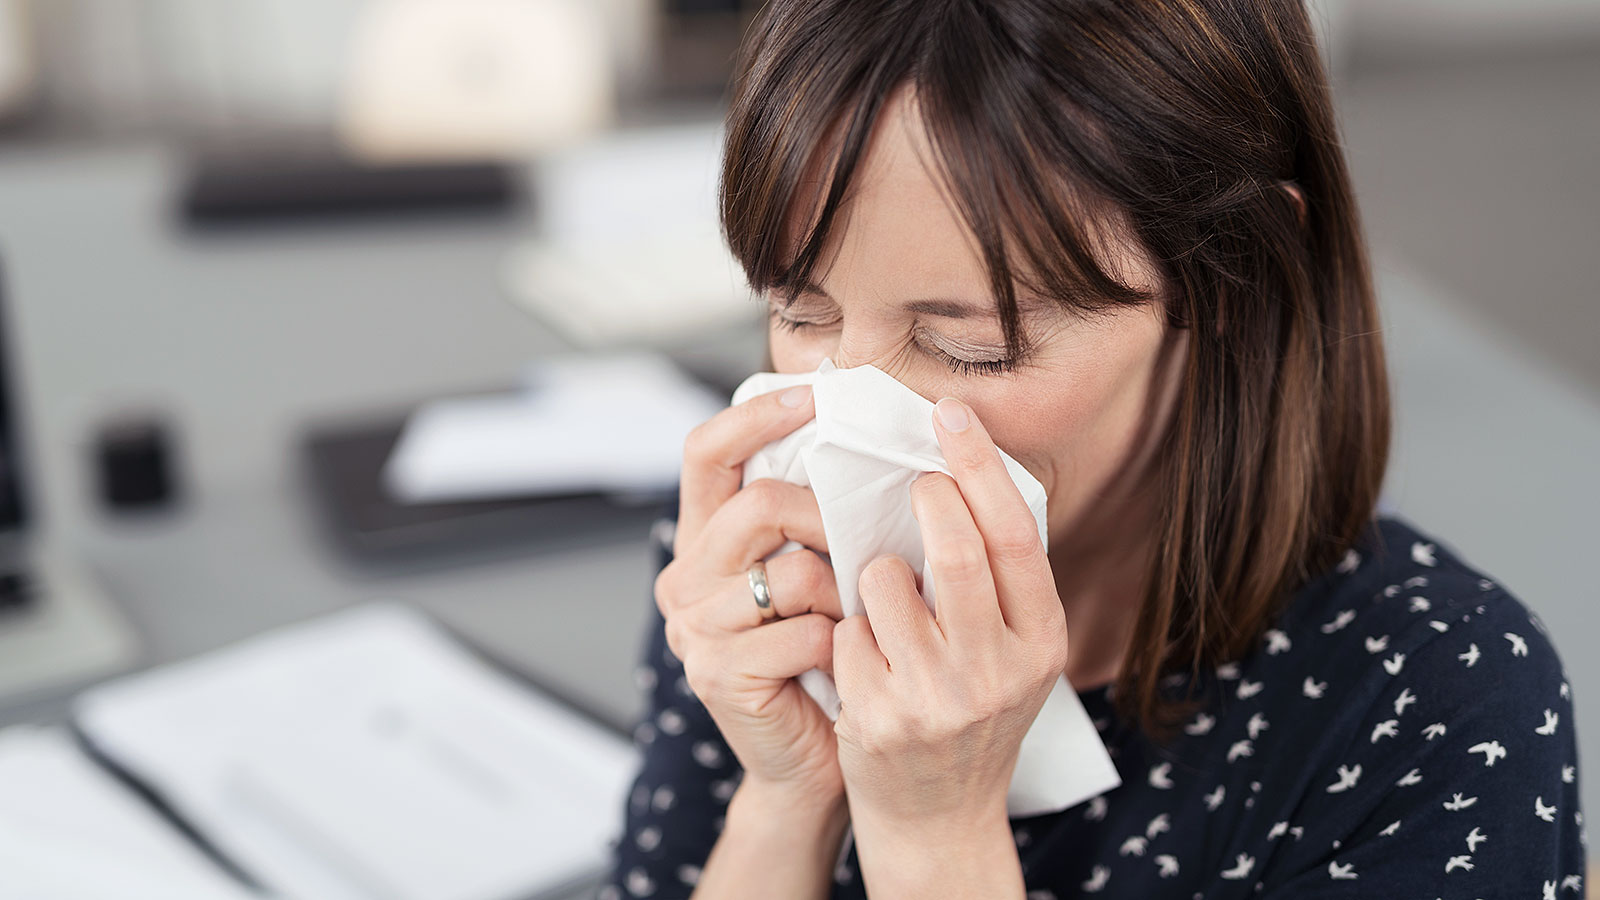 How to boost your immune system during the Coronavirus outbreak